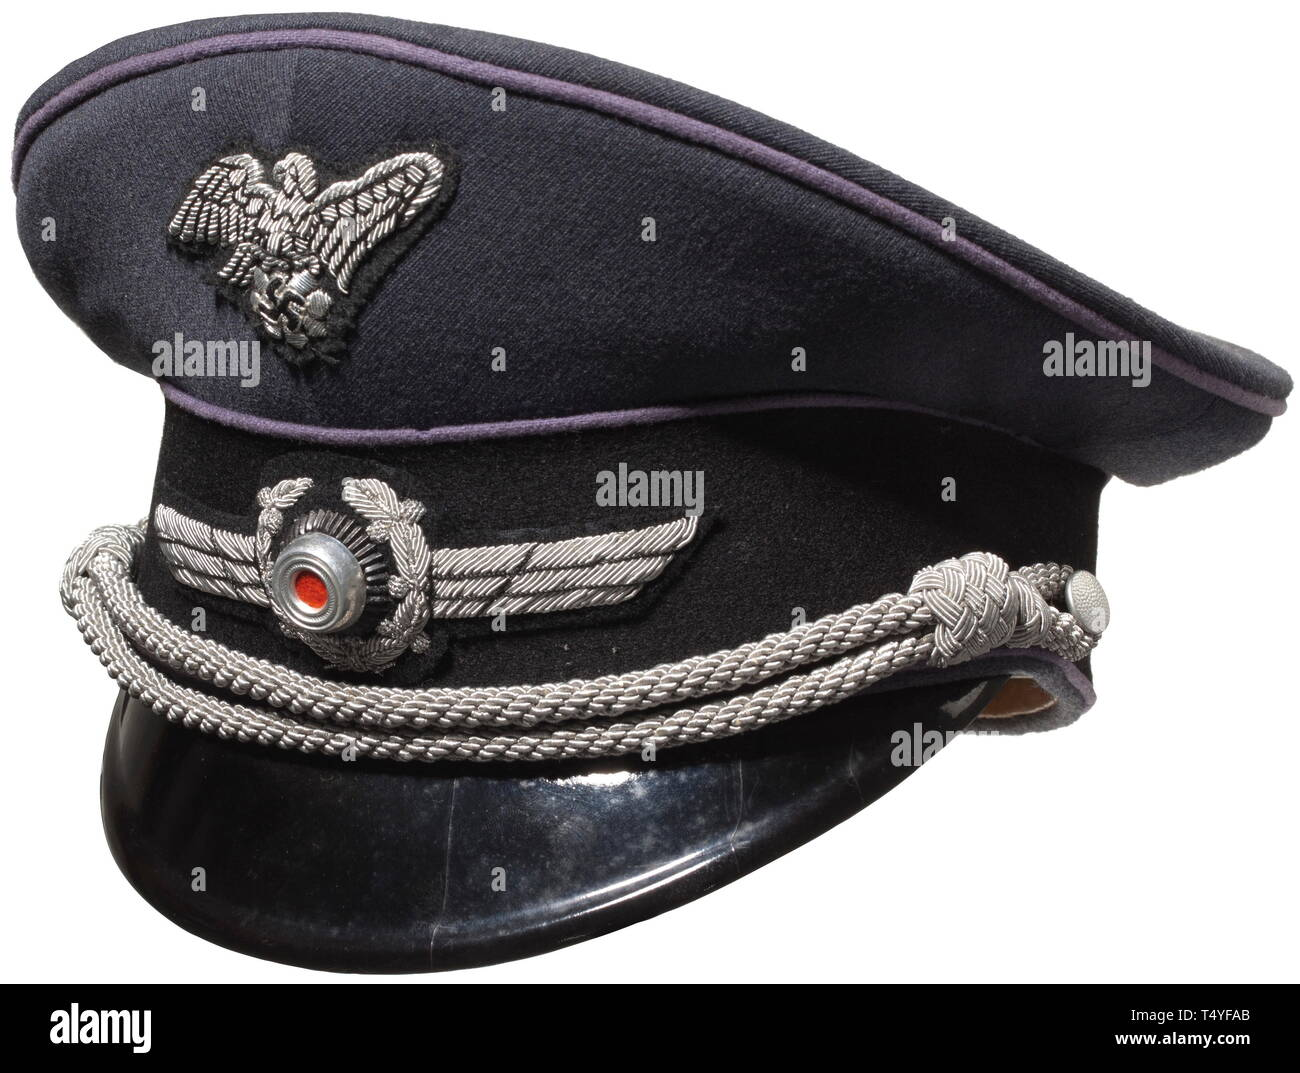 """A visor cap for leaders. Made of Luftwaffe blue gabardine, black cap band, violet piping, silver-embroidered RLB national emblem, the silver-embroidered wing with a metal cockade. Brown inner liner with celluloid trapezoid, silver imprinted RLB star, """"Gradgruppe 5-10"""" and a slide-in name tag """"Rudolf Abel"""". A very rare depot piece in only lightly worn condition. historic, historical, Reichsluftschutzbund, State Air Protection Corps, organisation, organization, organizations, organisations, NS, National Socialism, Nazism, Third Reich, German Reich, Germany, utilities, accesso, Editorial-Use-Only Stock Photo"""